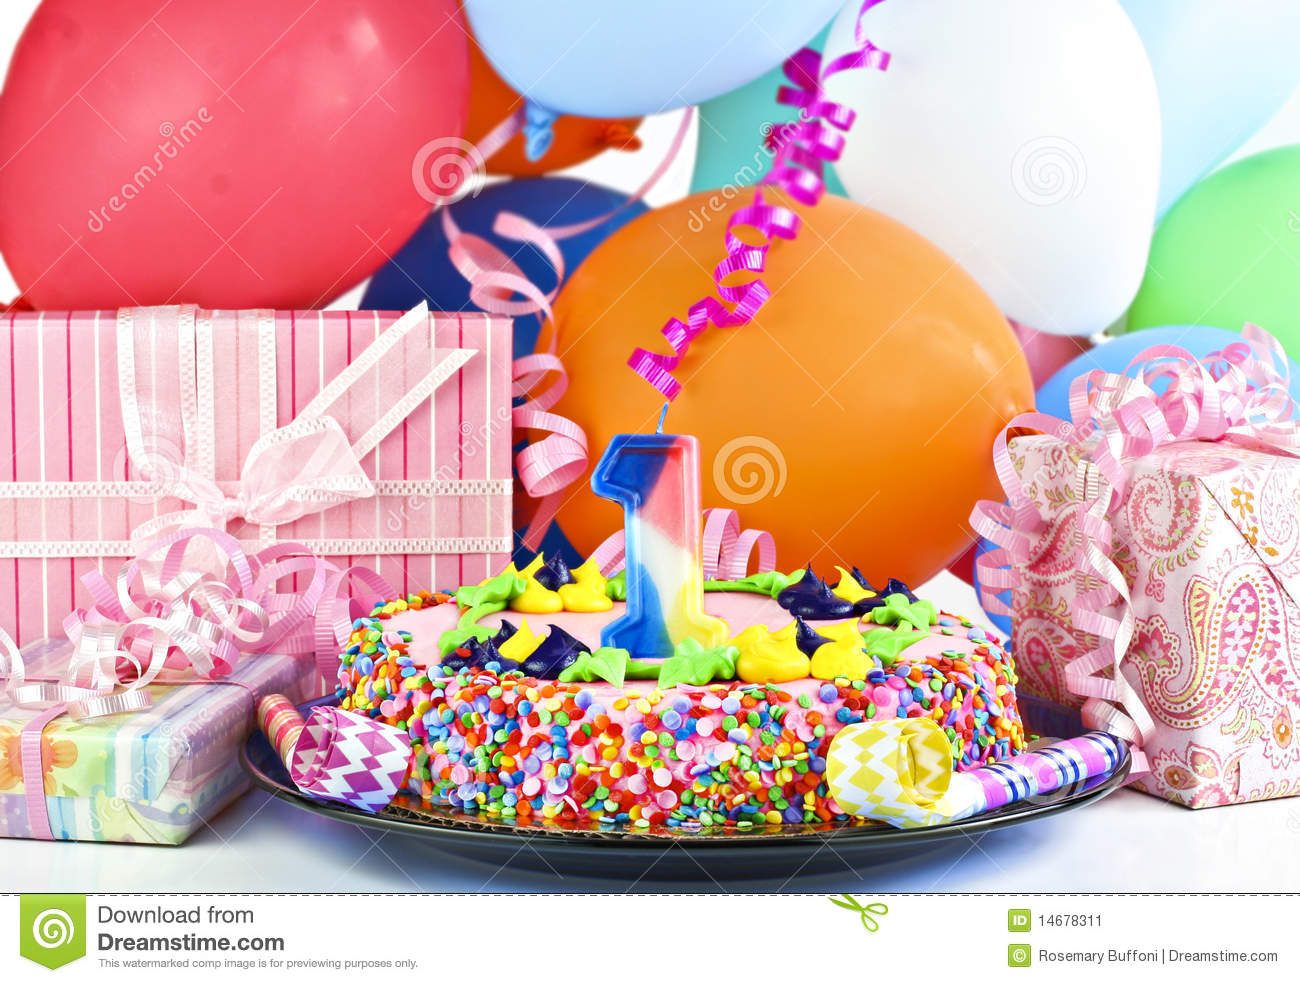 Birthday Cake For 1 Year Old Stock Image - Image: 14678311